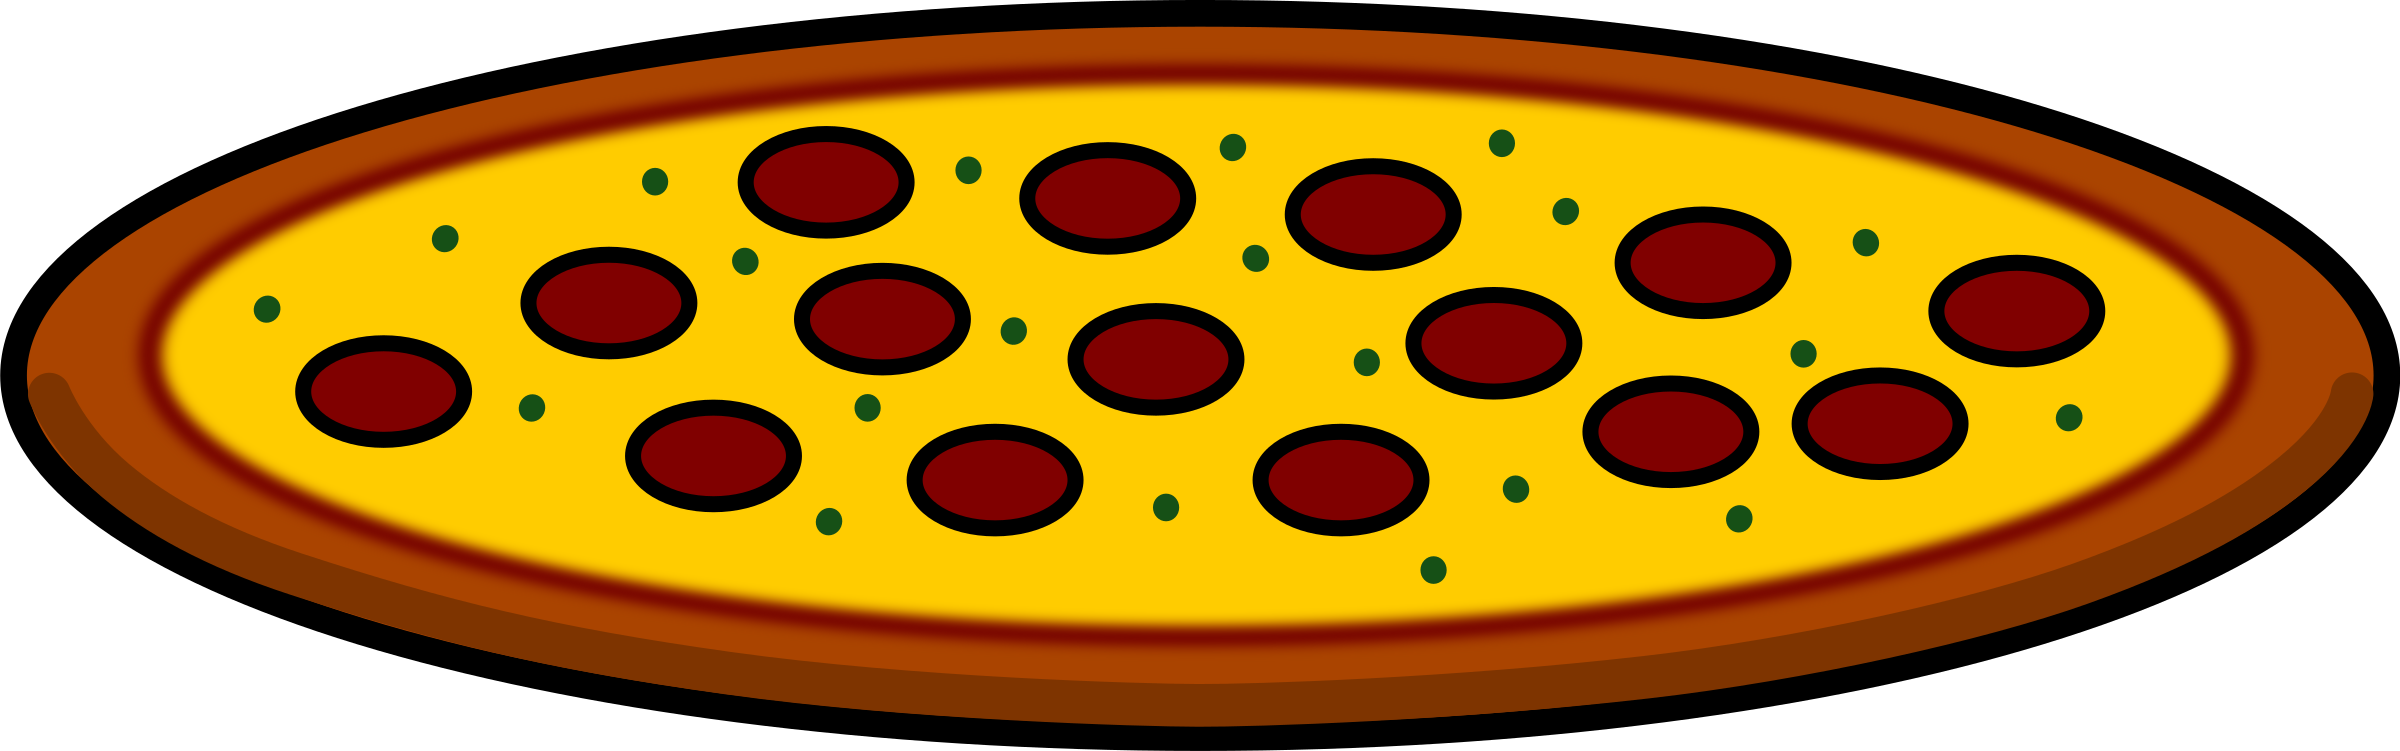 2400x751 Pizza Slice Clip Art